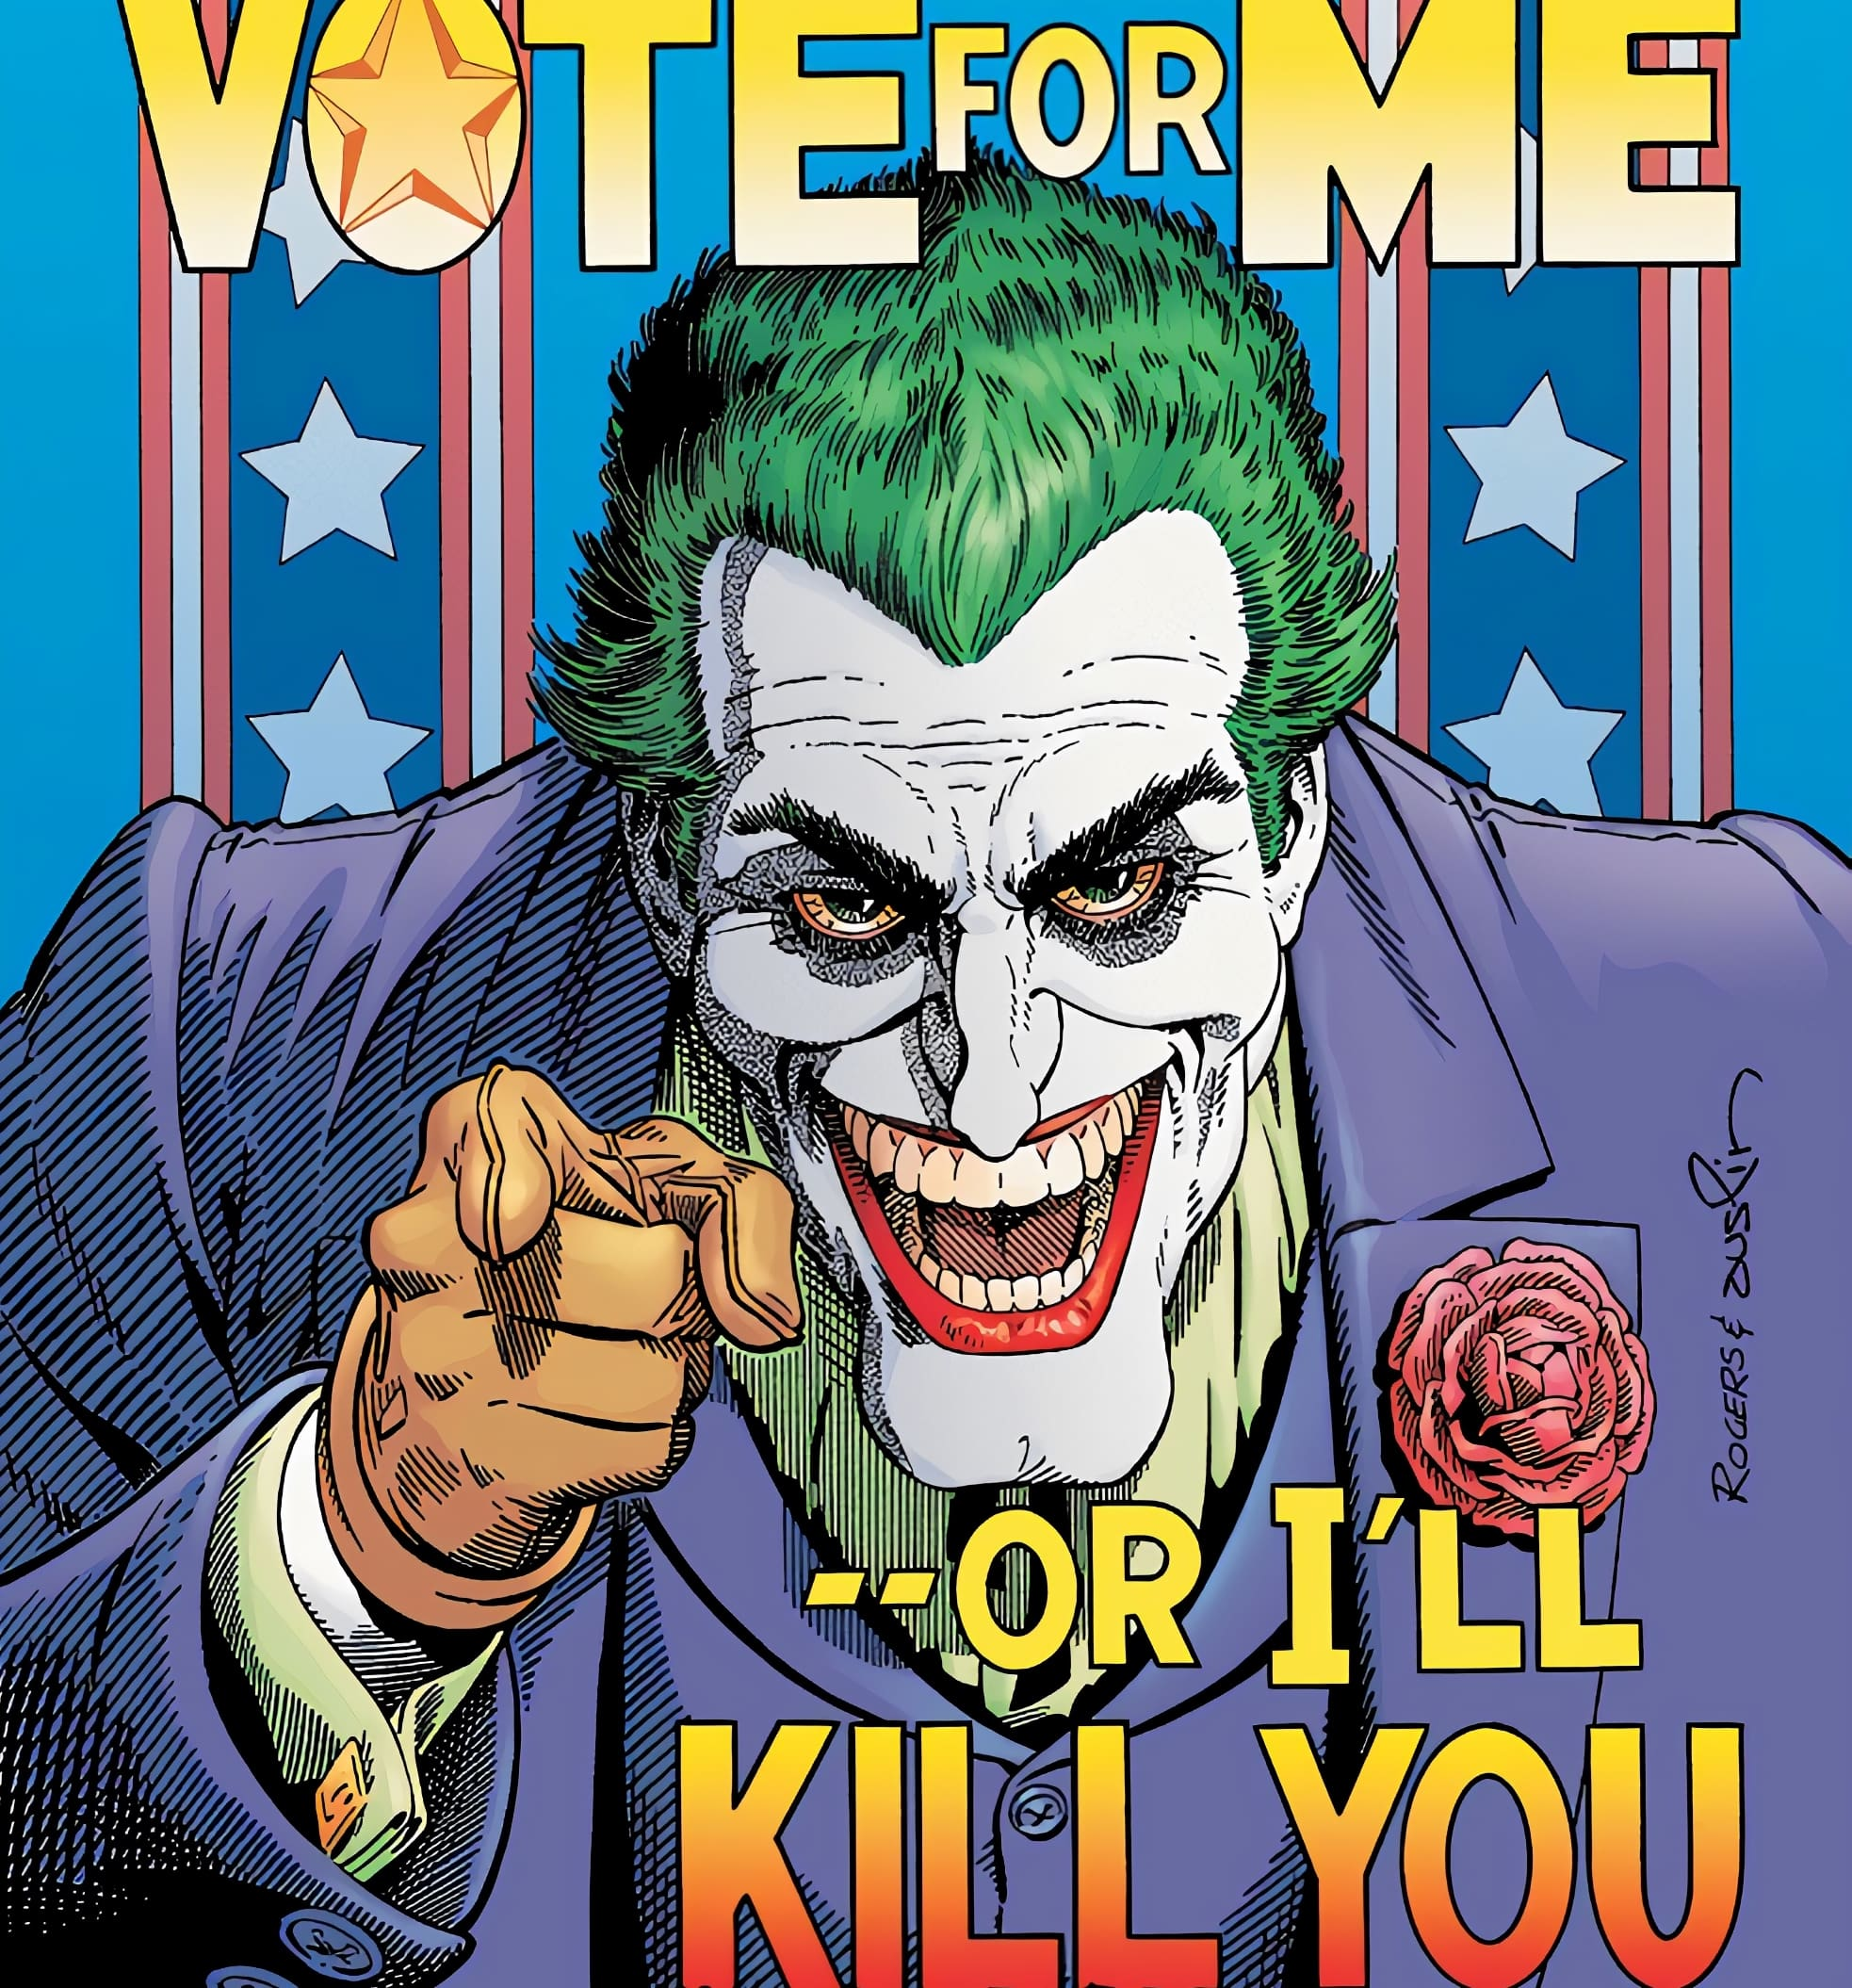 CNN anchor Jake Tapper urges followers to vote via comic book art